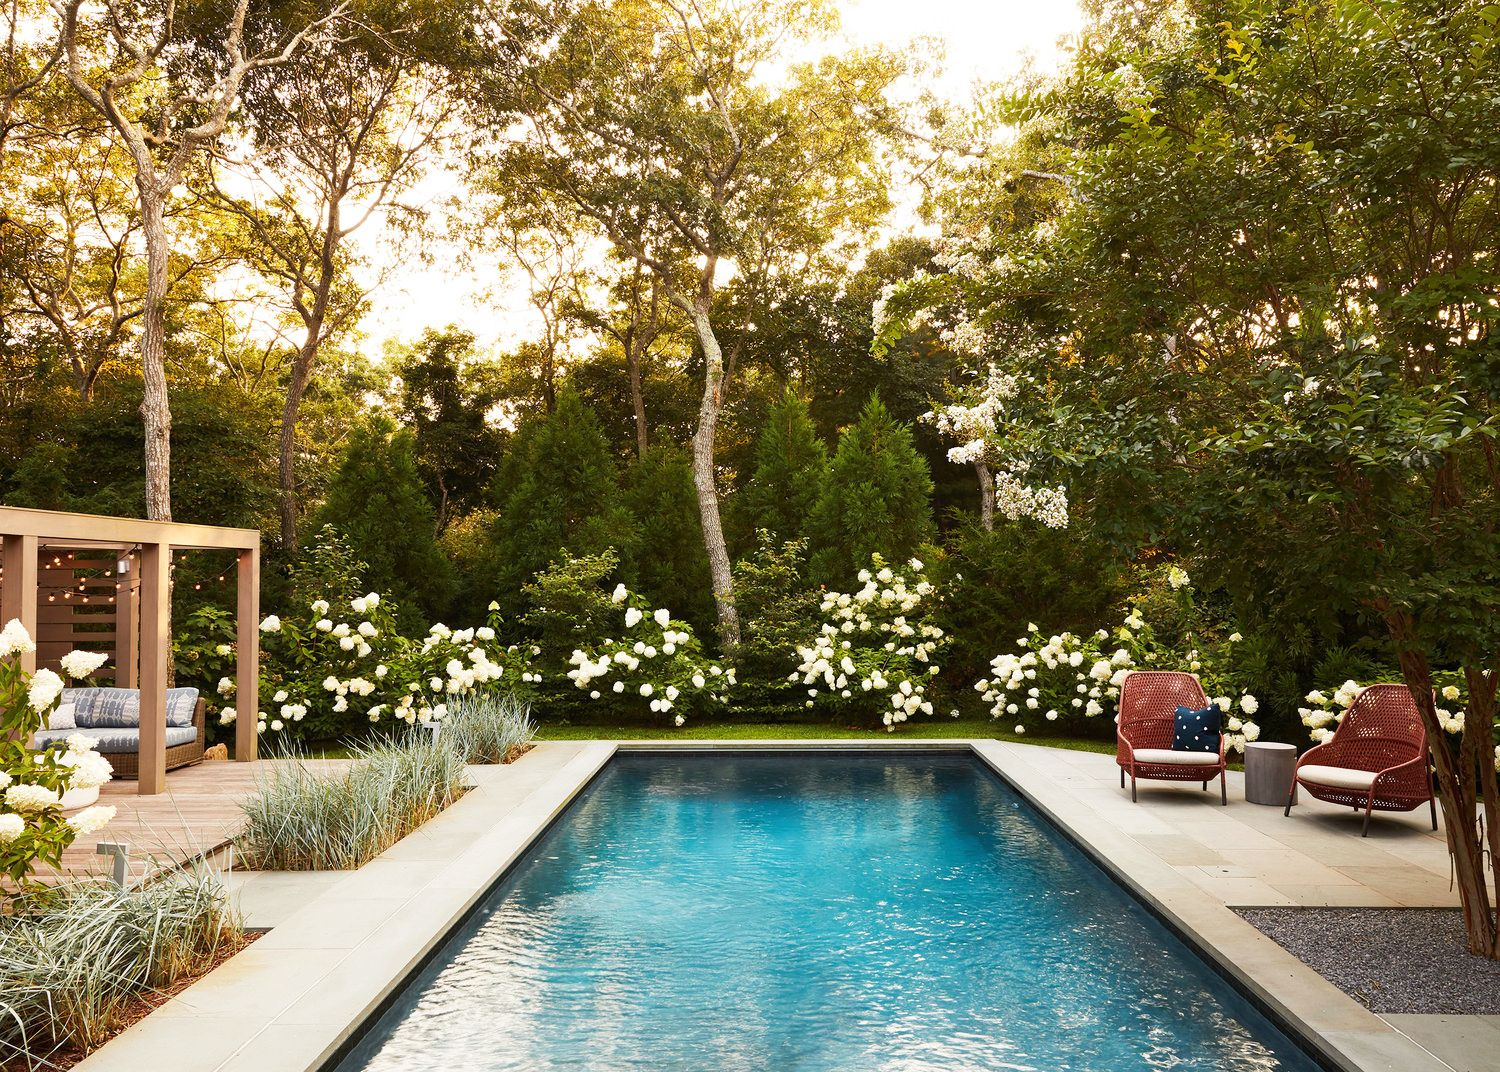 37 Breathtaking Backyard Ideas Outdoor Space Design Inspiration pertaining to 10 Awesome Ideas How to Craft Pool Ideas For Backyards